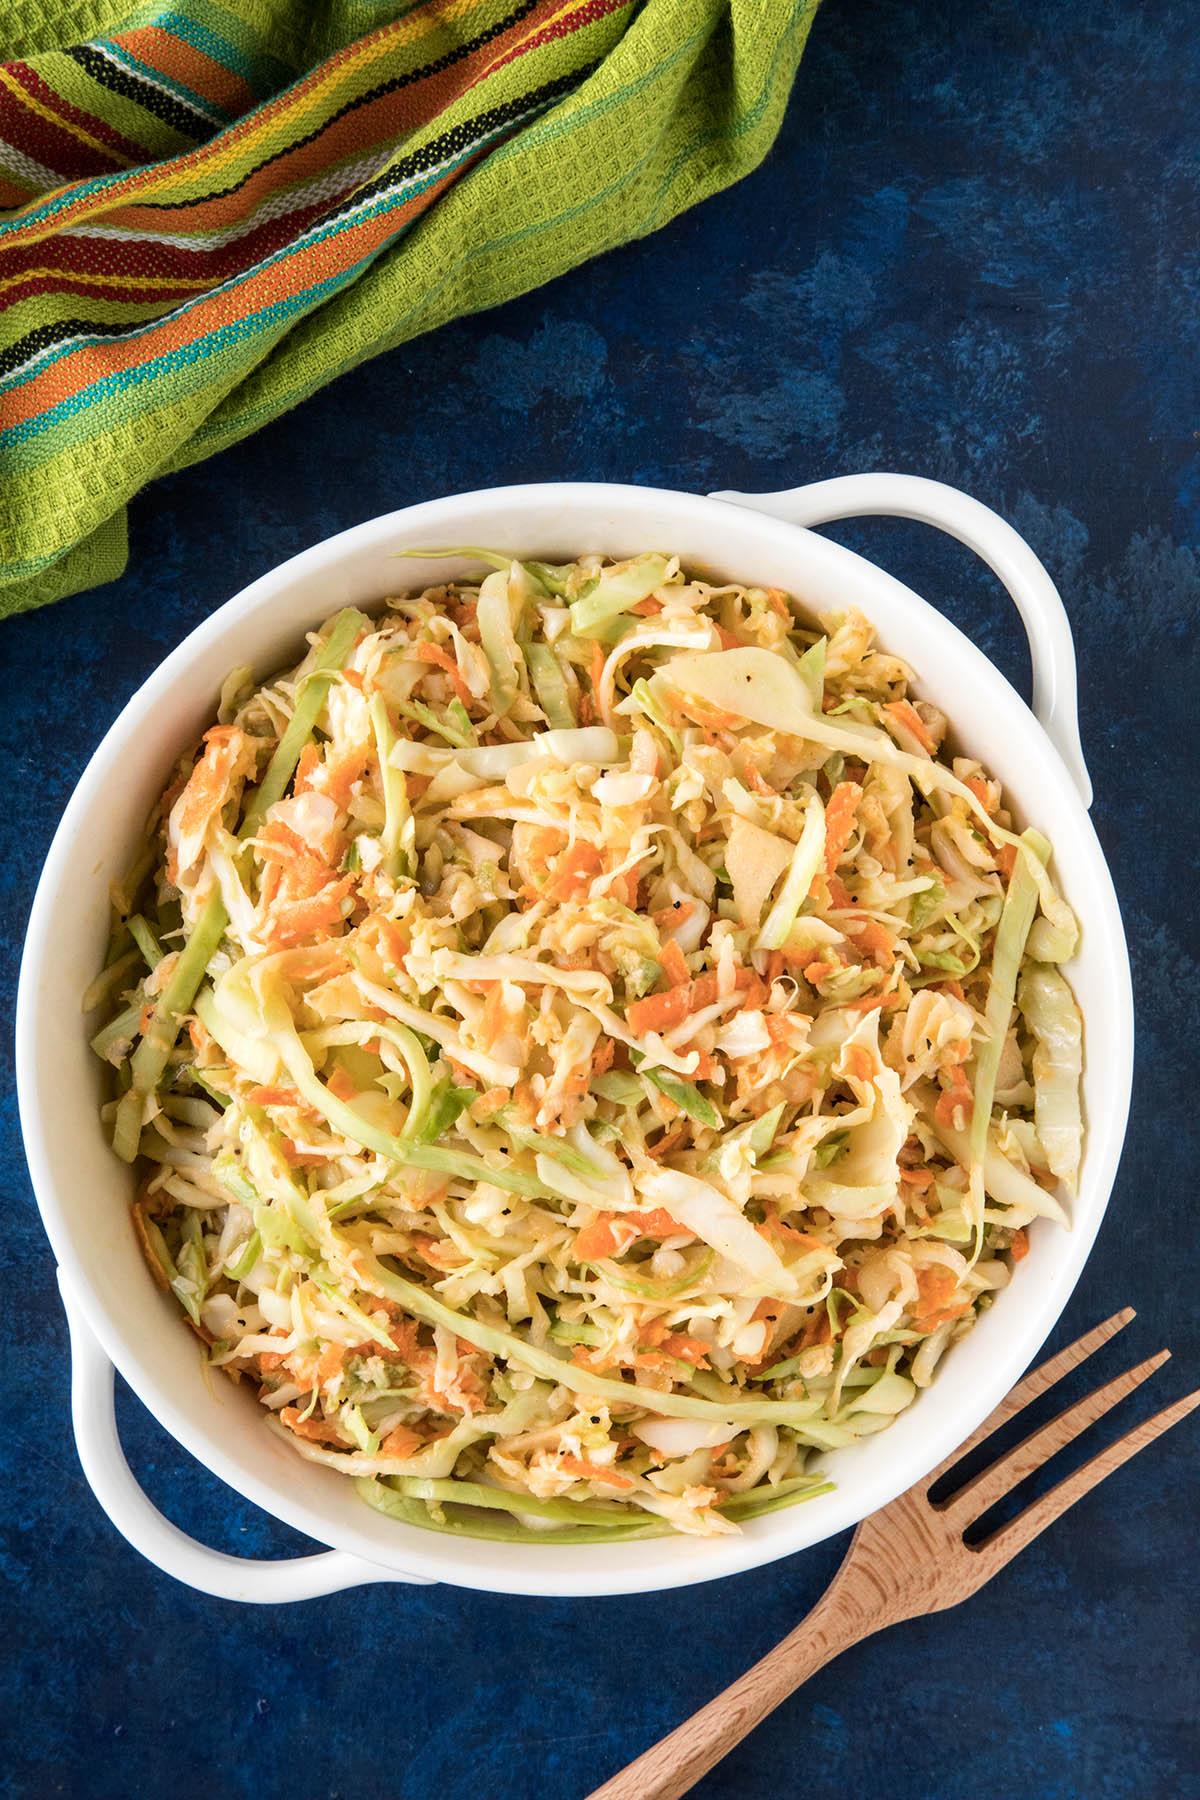 Spicy Creamy Coleslaw - Ready to Eat!